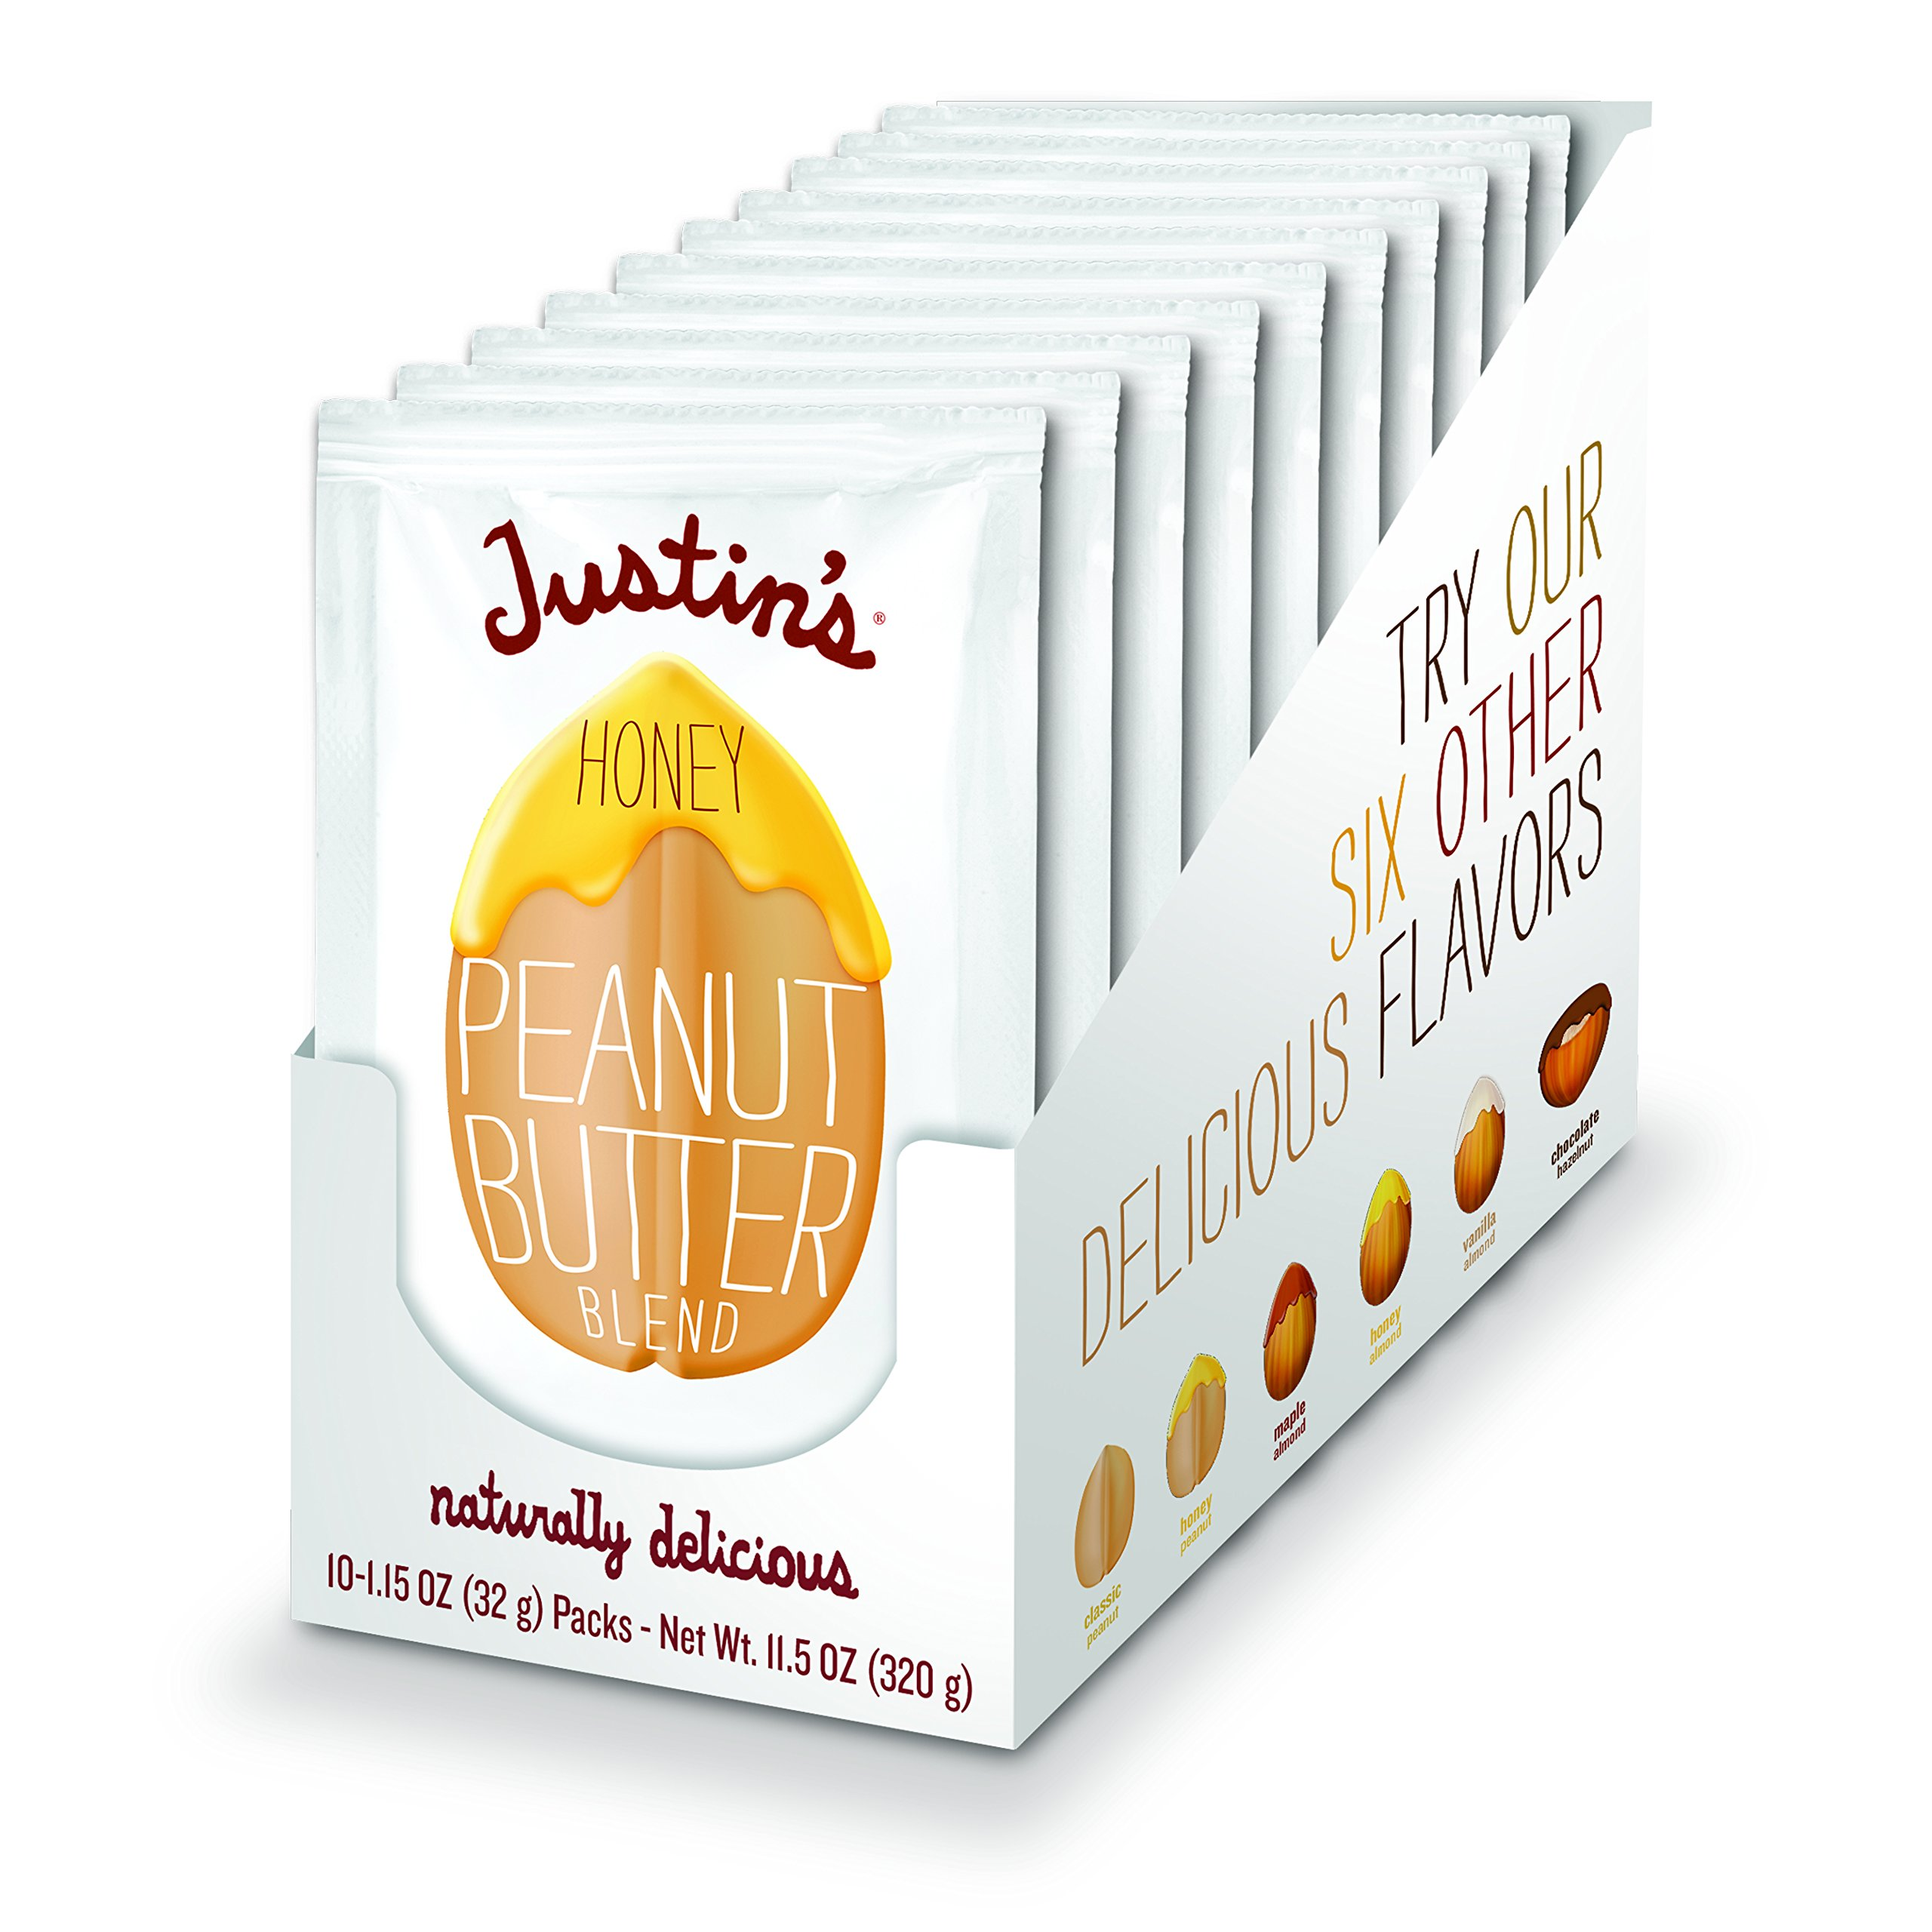 Honey Peanut Butter Squeeze Packs by Justin's, Gluten-free, Non-GMO, Responsibly Sourced, Pack of 10 (1.15oz each)